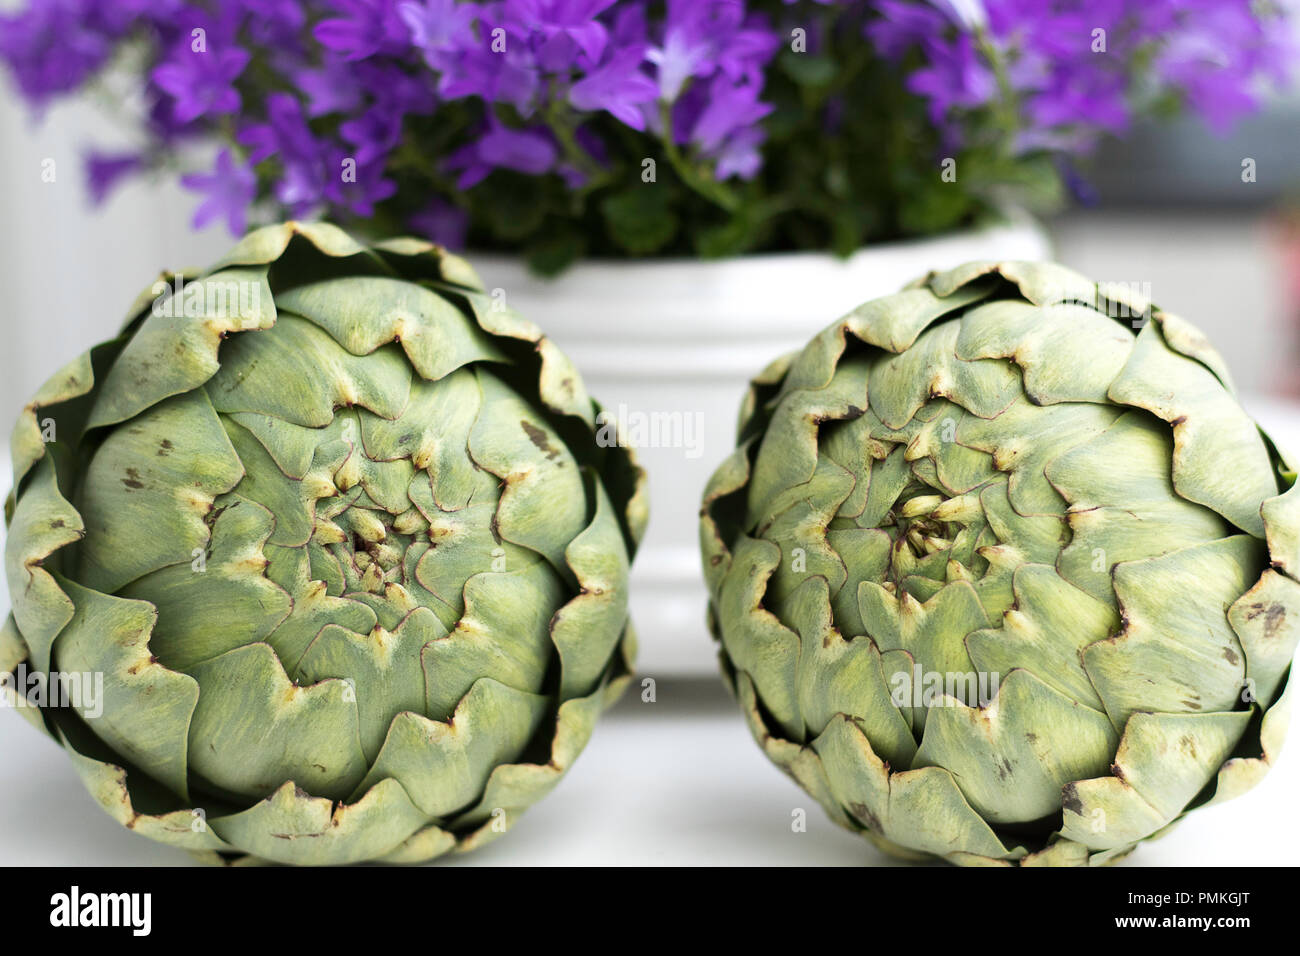 Two artischokes lying on a white surface. Background blurred out purple summer flowers. - Stock Image